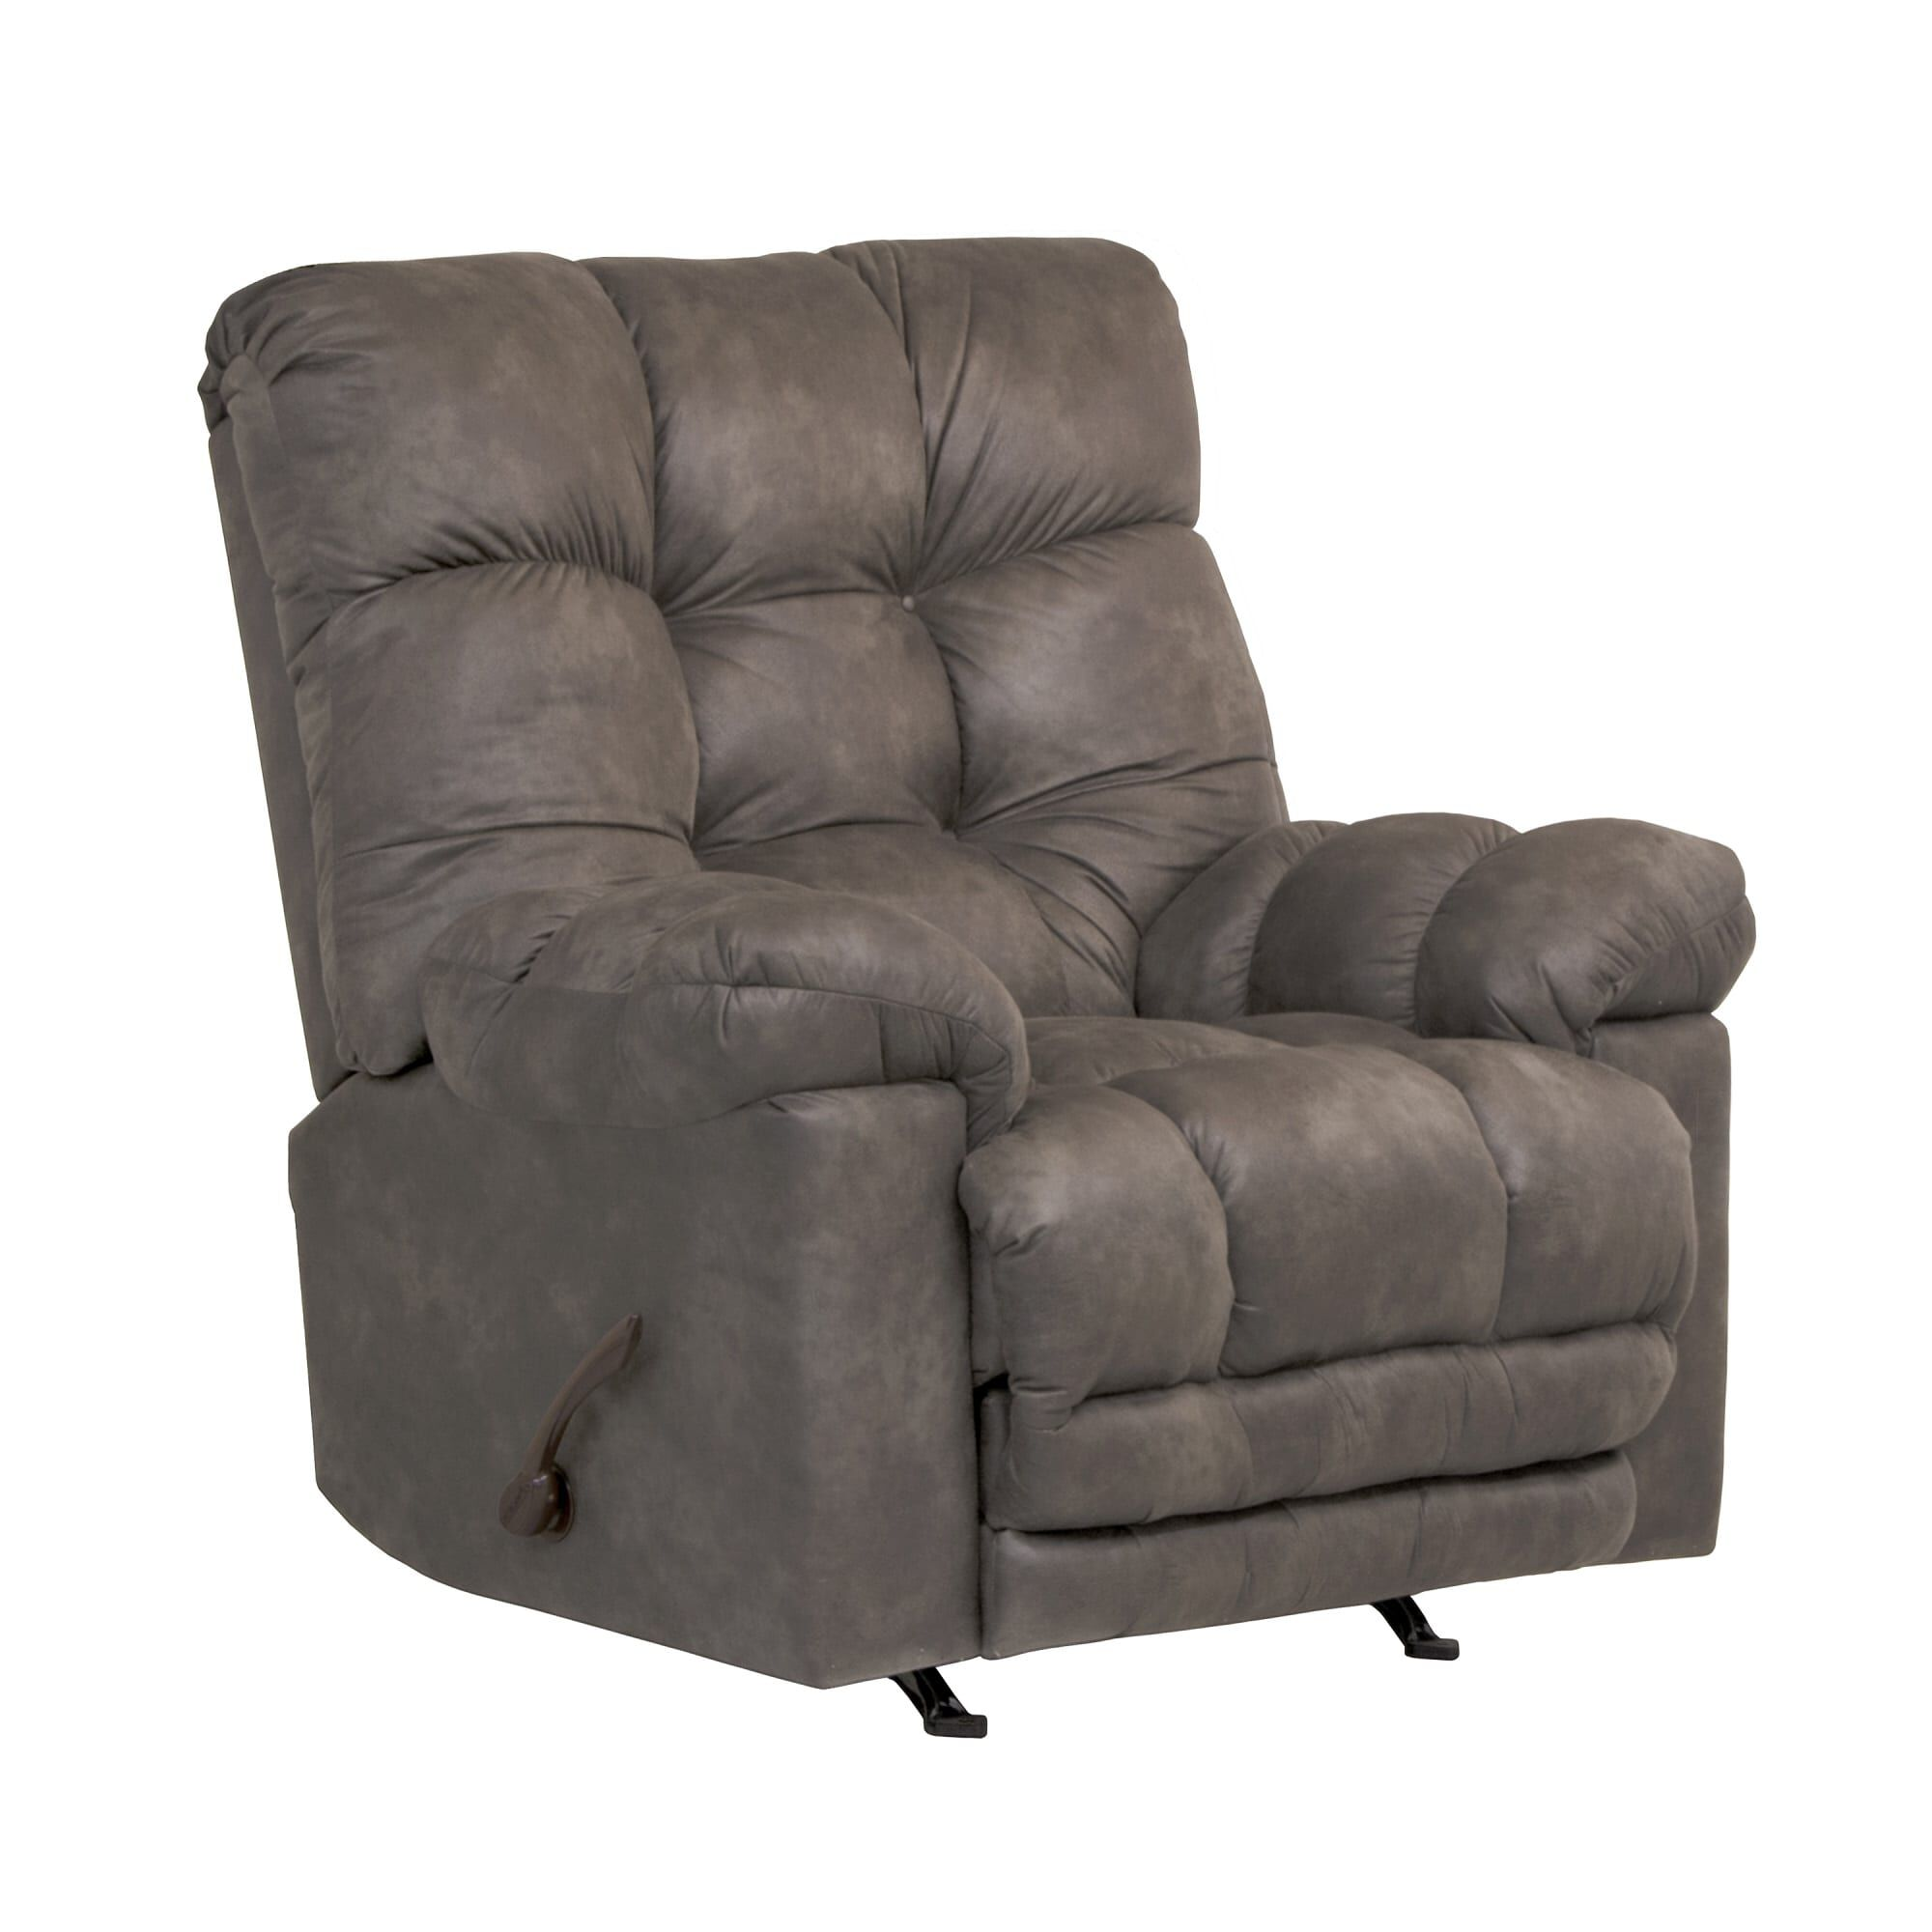 recliner chairs cheap bedroom chair no arms rent to own aaron s heat massage rocker